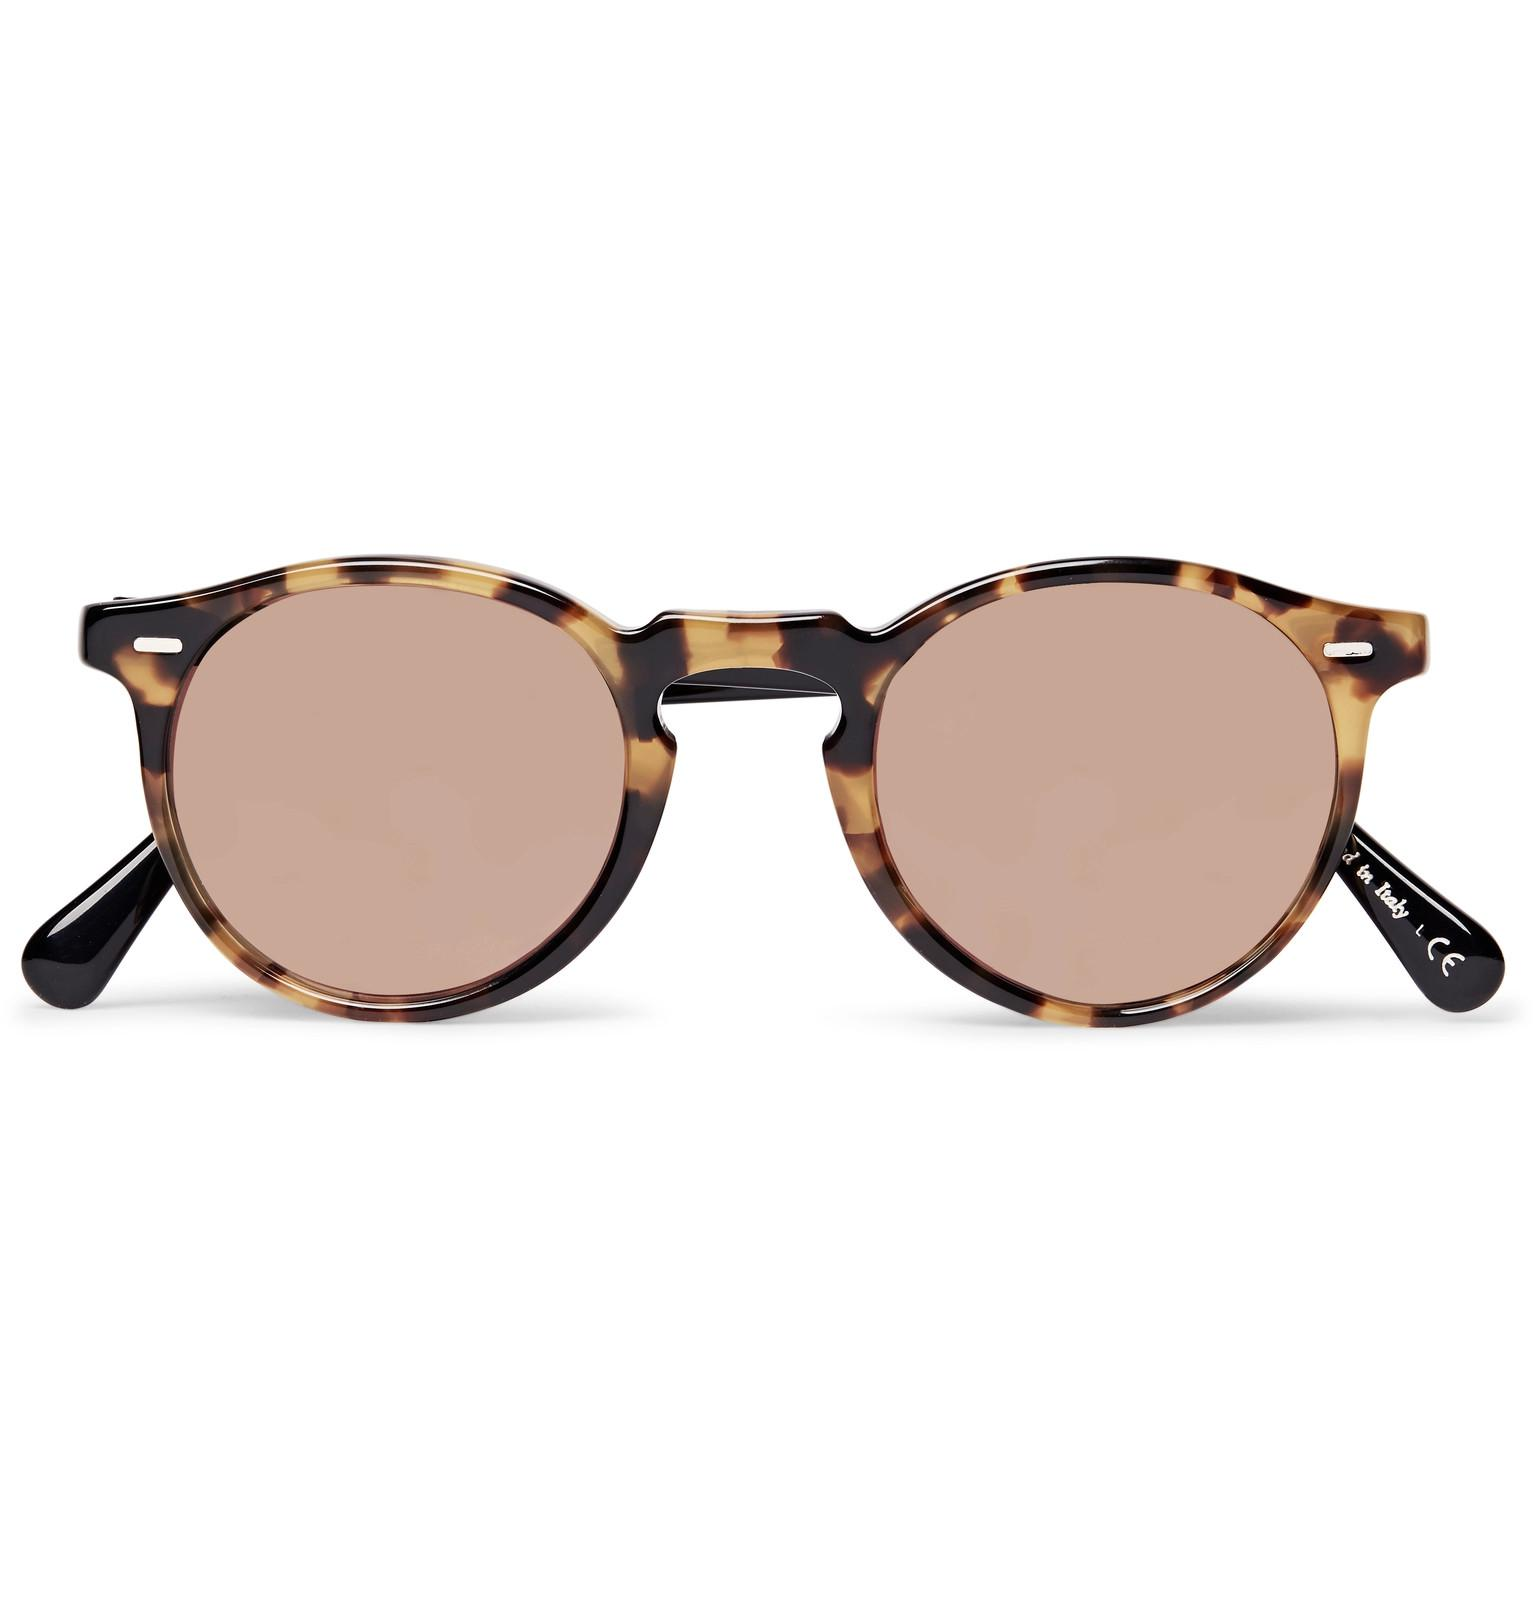 Oliver Peoples Gregory Peck Round-frame Two-tone Tortoiseshell Acetate Sunglasses - Brown etxRa